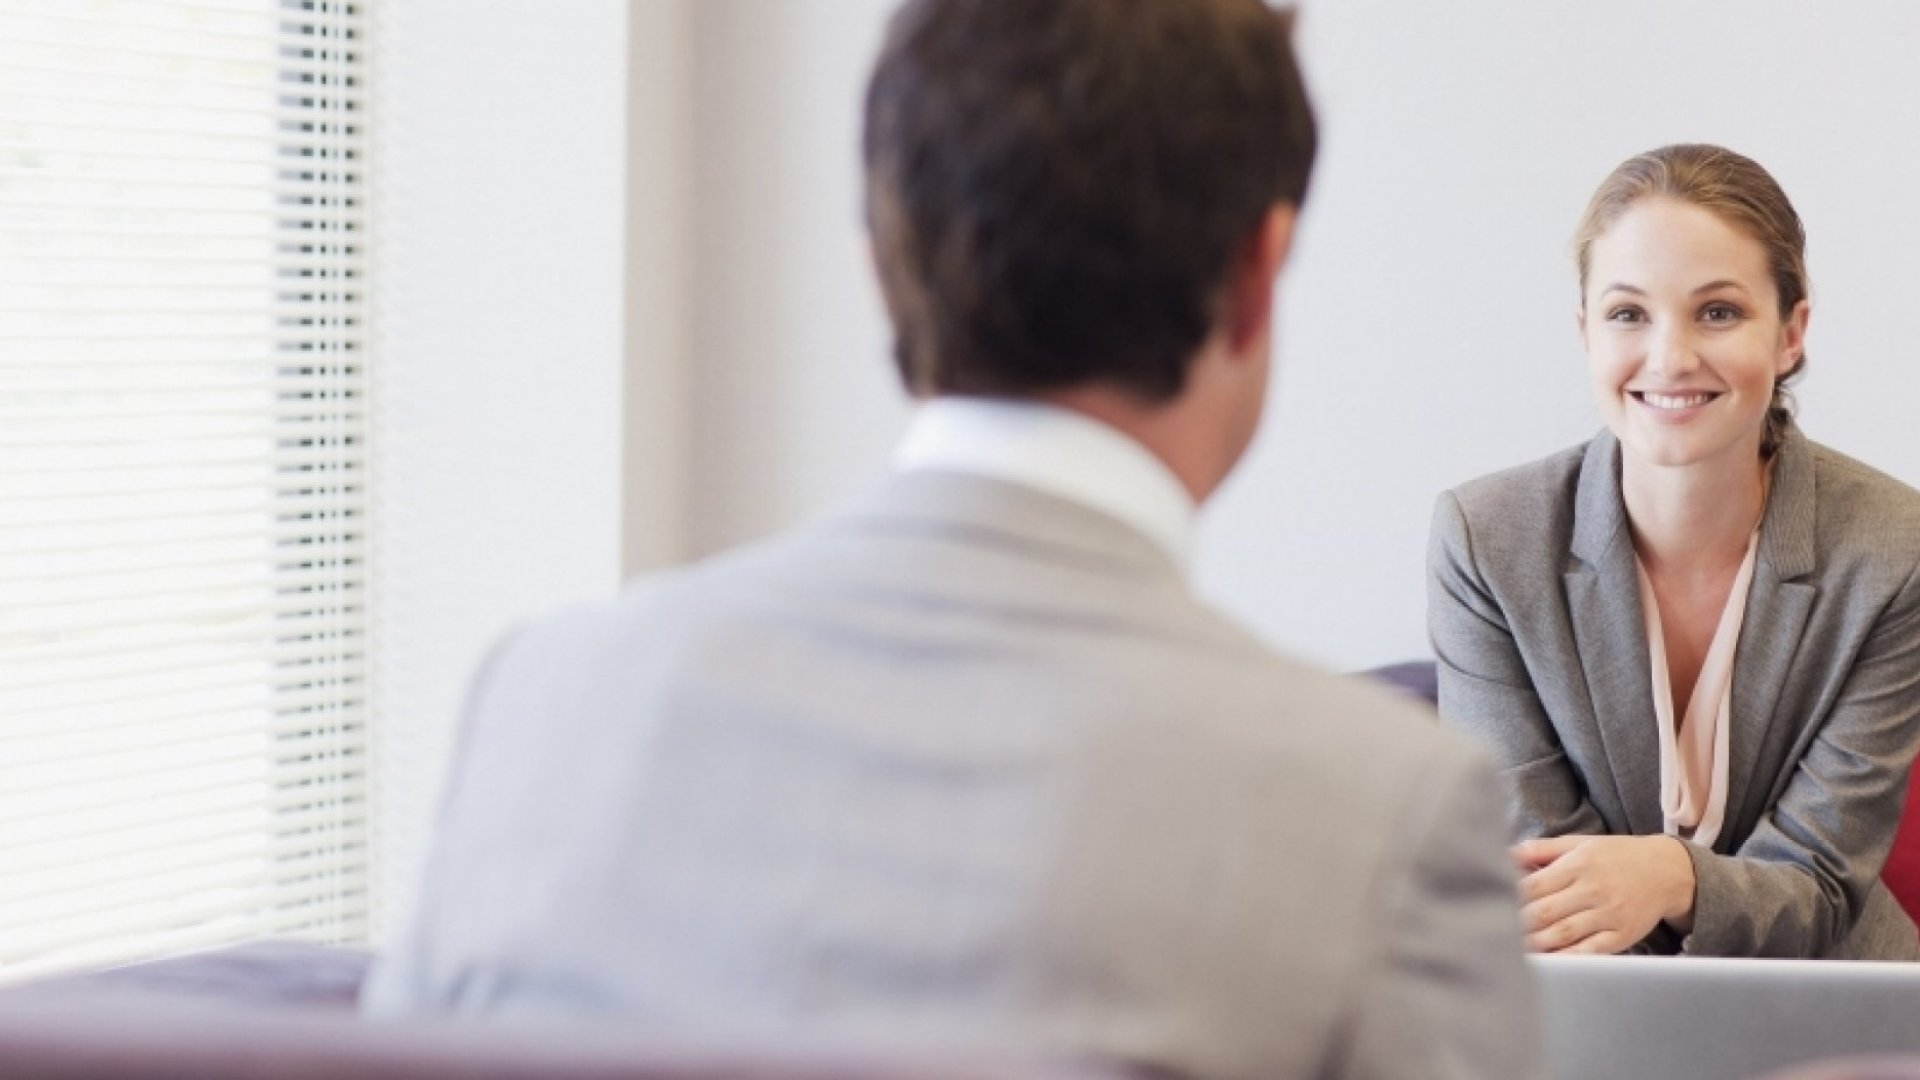 Google's HR Boss: Focus on These Interview Questions